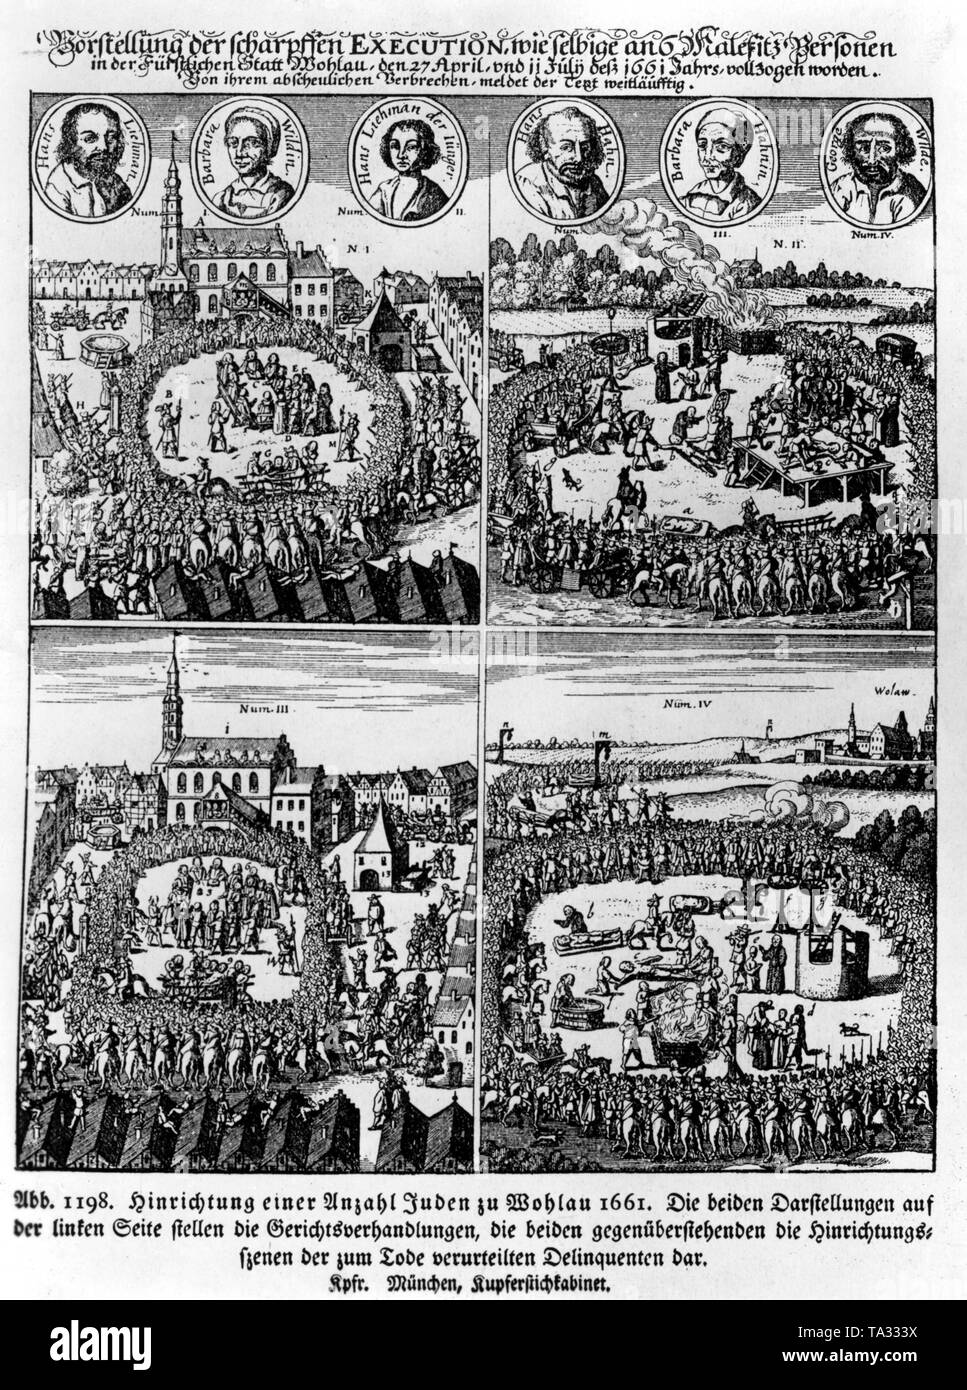 Jews are being executed in Wohlau, today's Wolow in Poland. On the left side is a court hearing, on the right, the execution scene. This copper engraving is in the Munich Kupferstichkabinett. Stock Photo